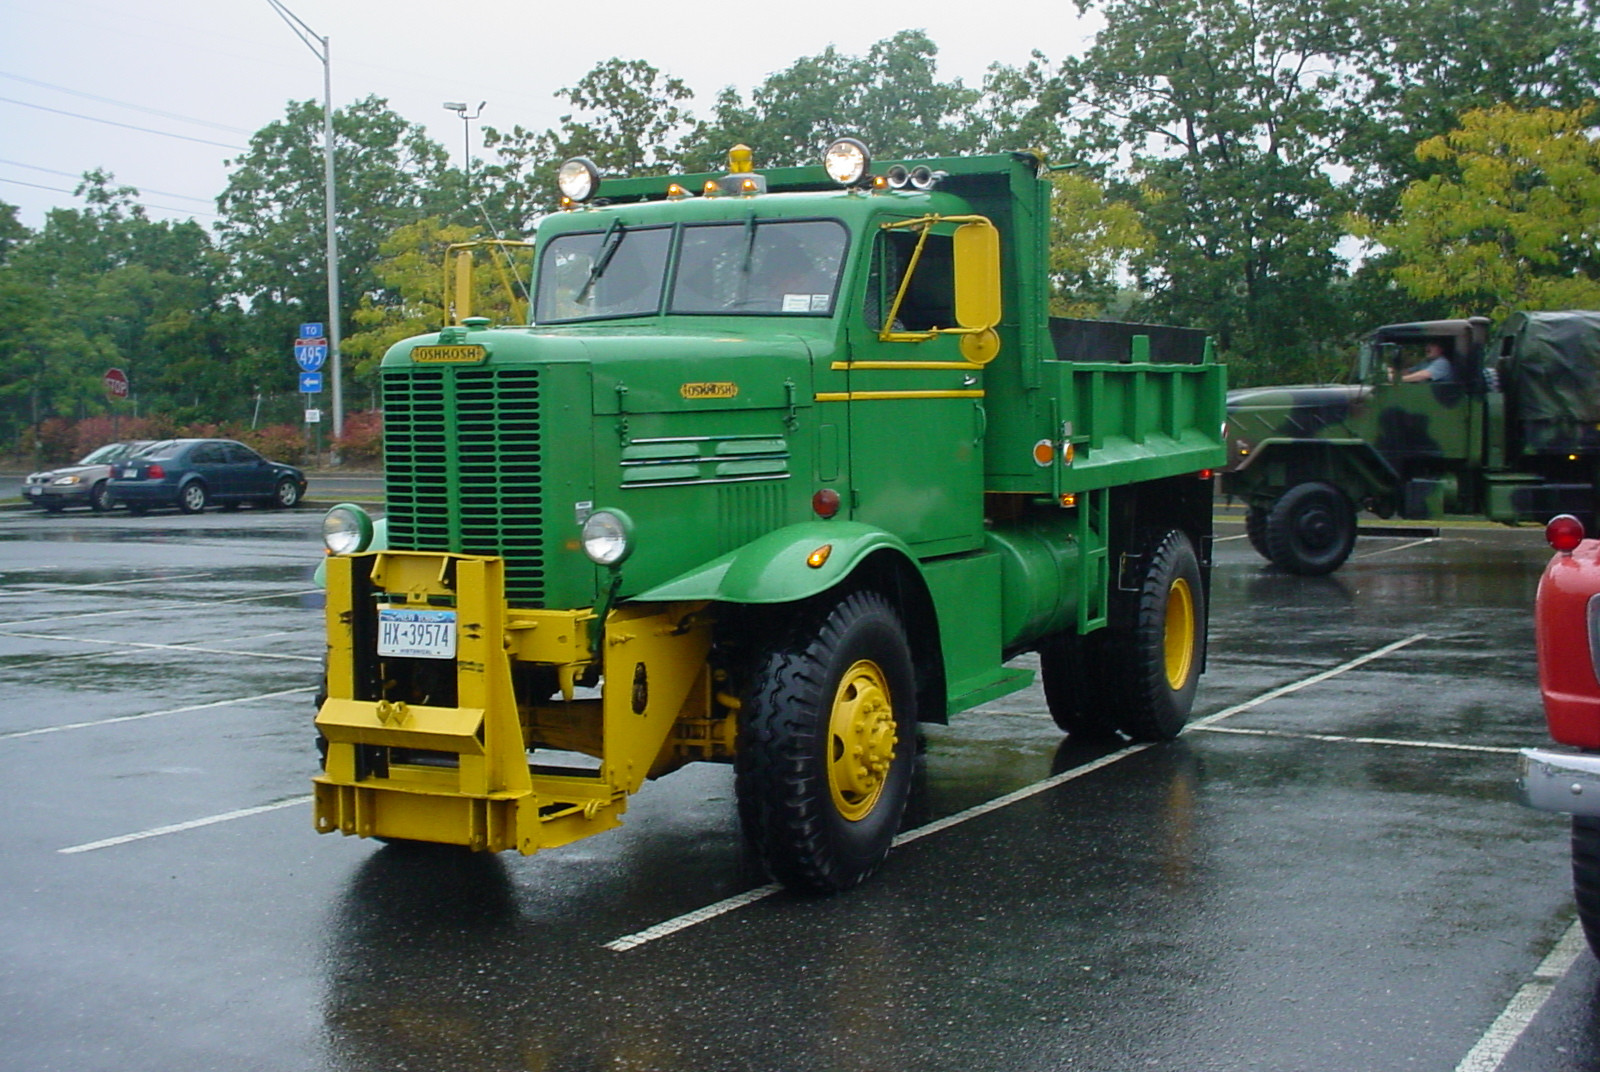 Robert Viscardi's 1957 Oshkosh dump